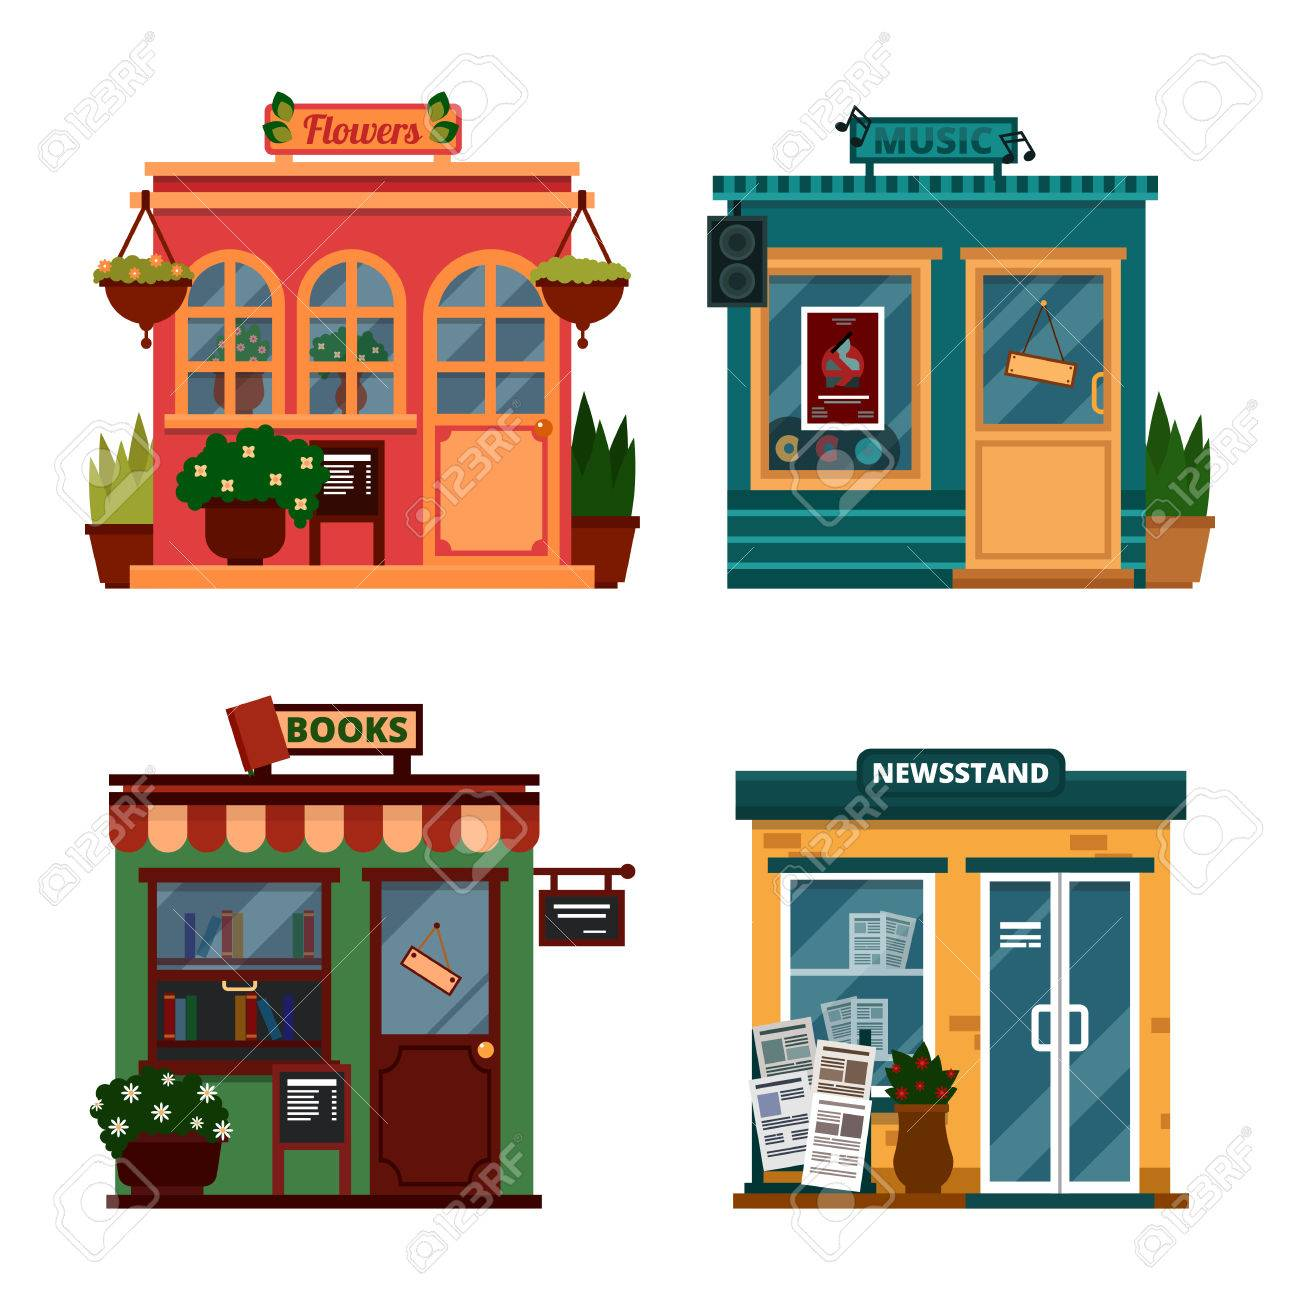 Vector illustration of buildings that are shops for buying decorations and leisure accessories. Set of nice flat shops. Different Showcases - Flowers, music, books, newsstand with sound box. - 52693705